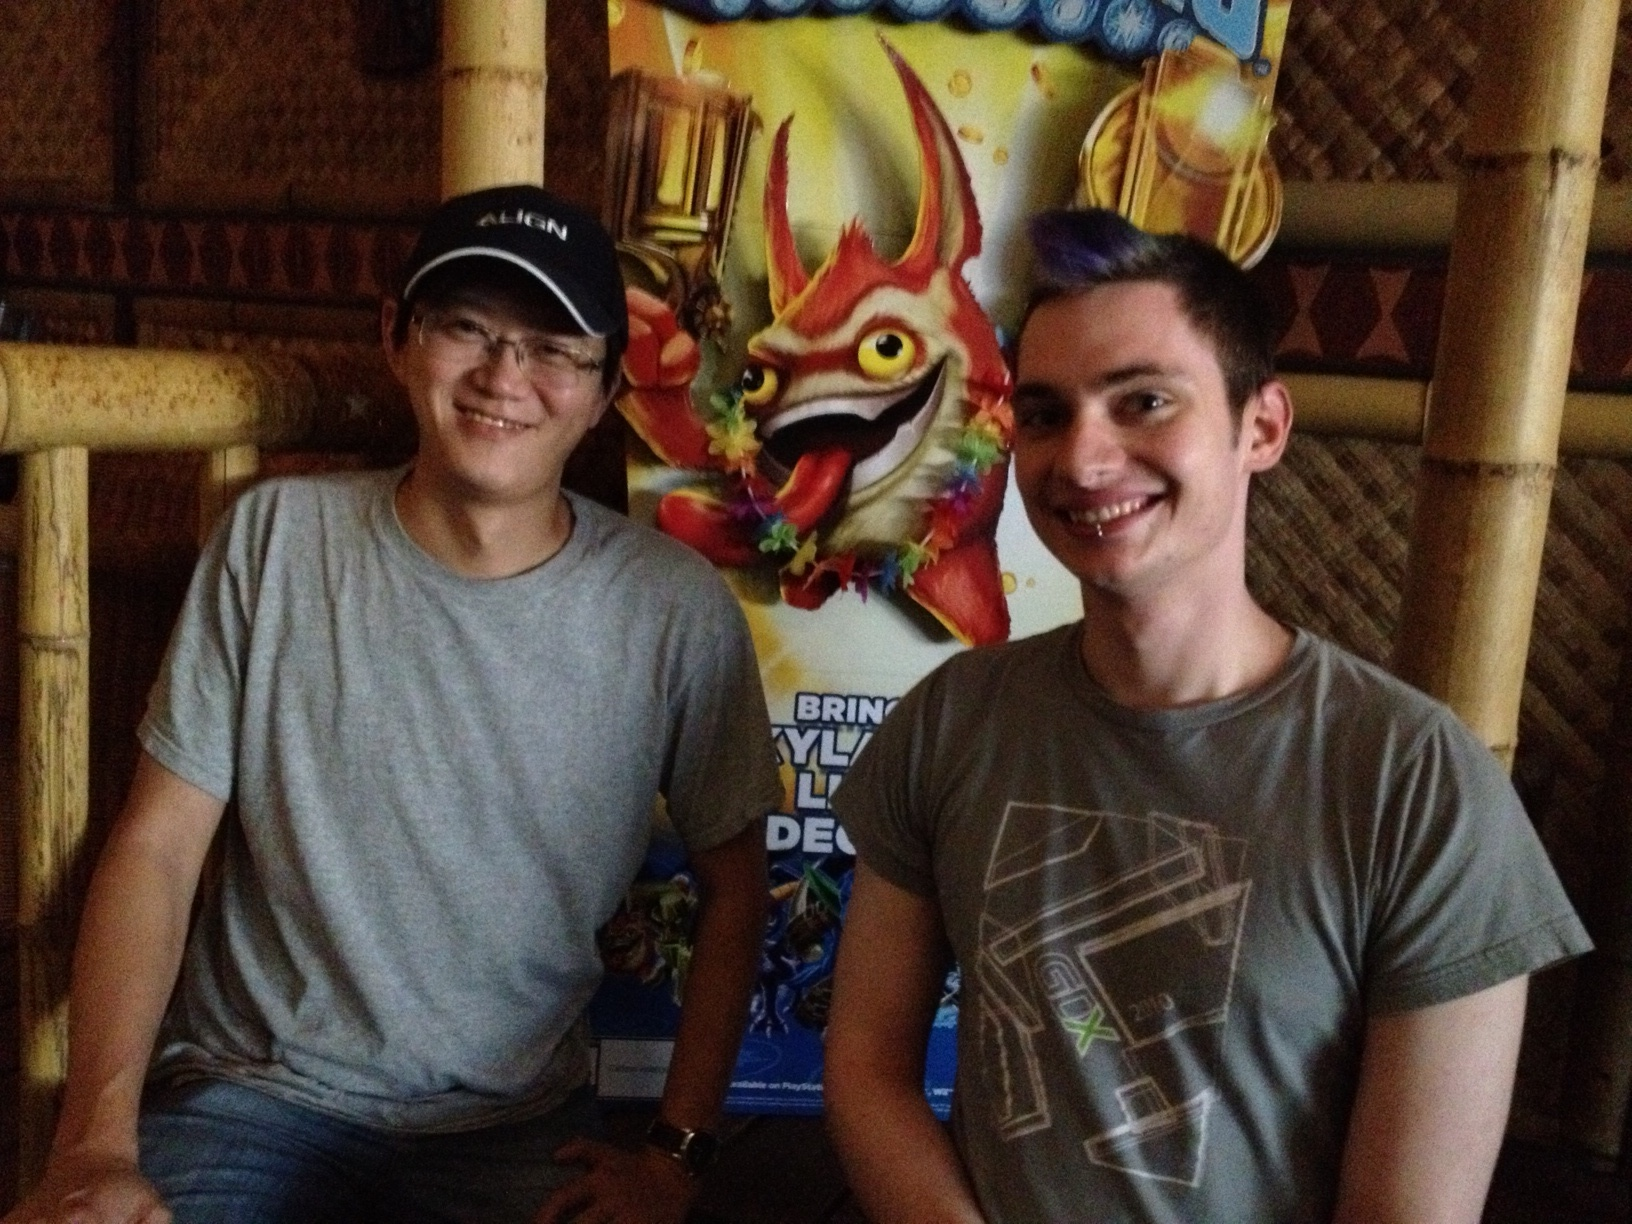 Skylanders Designers Come to Maker Camp, Tomorrow